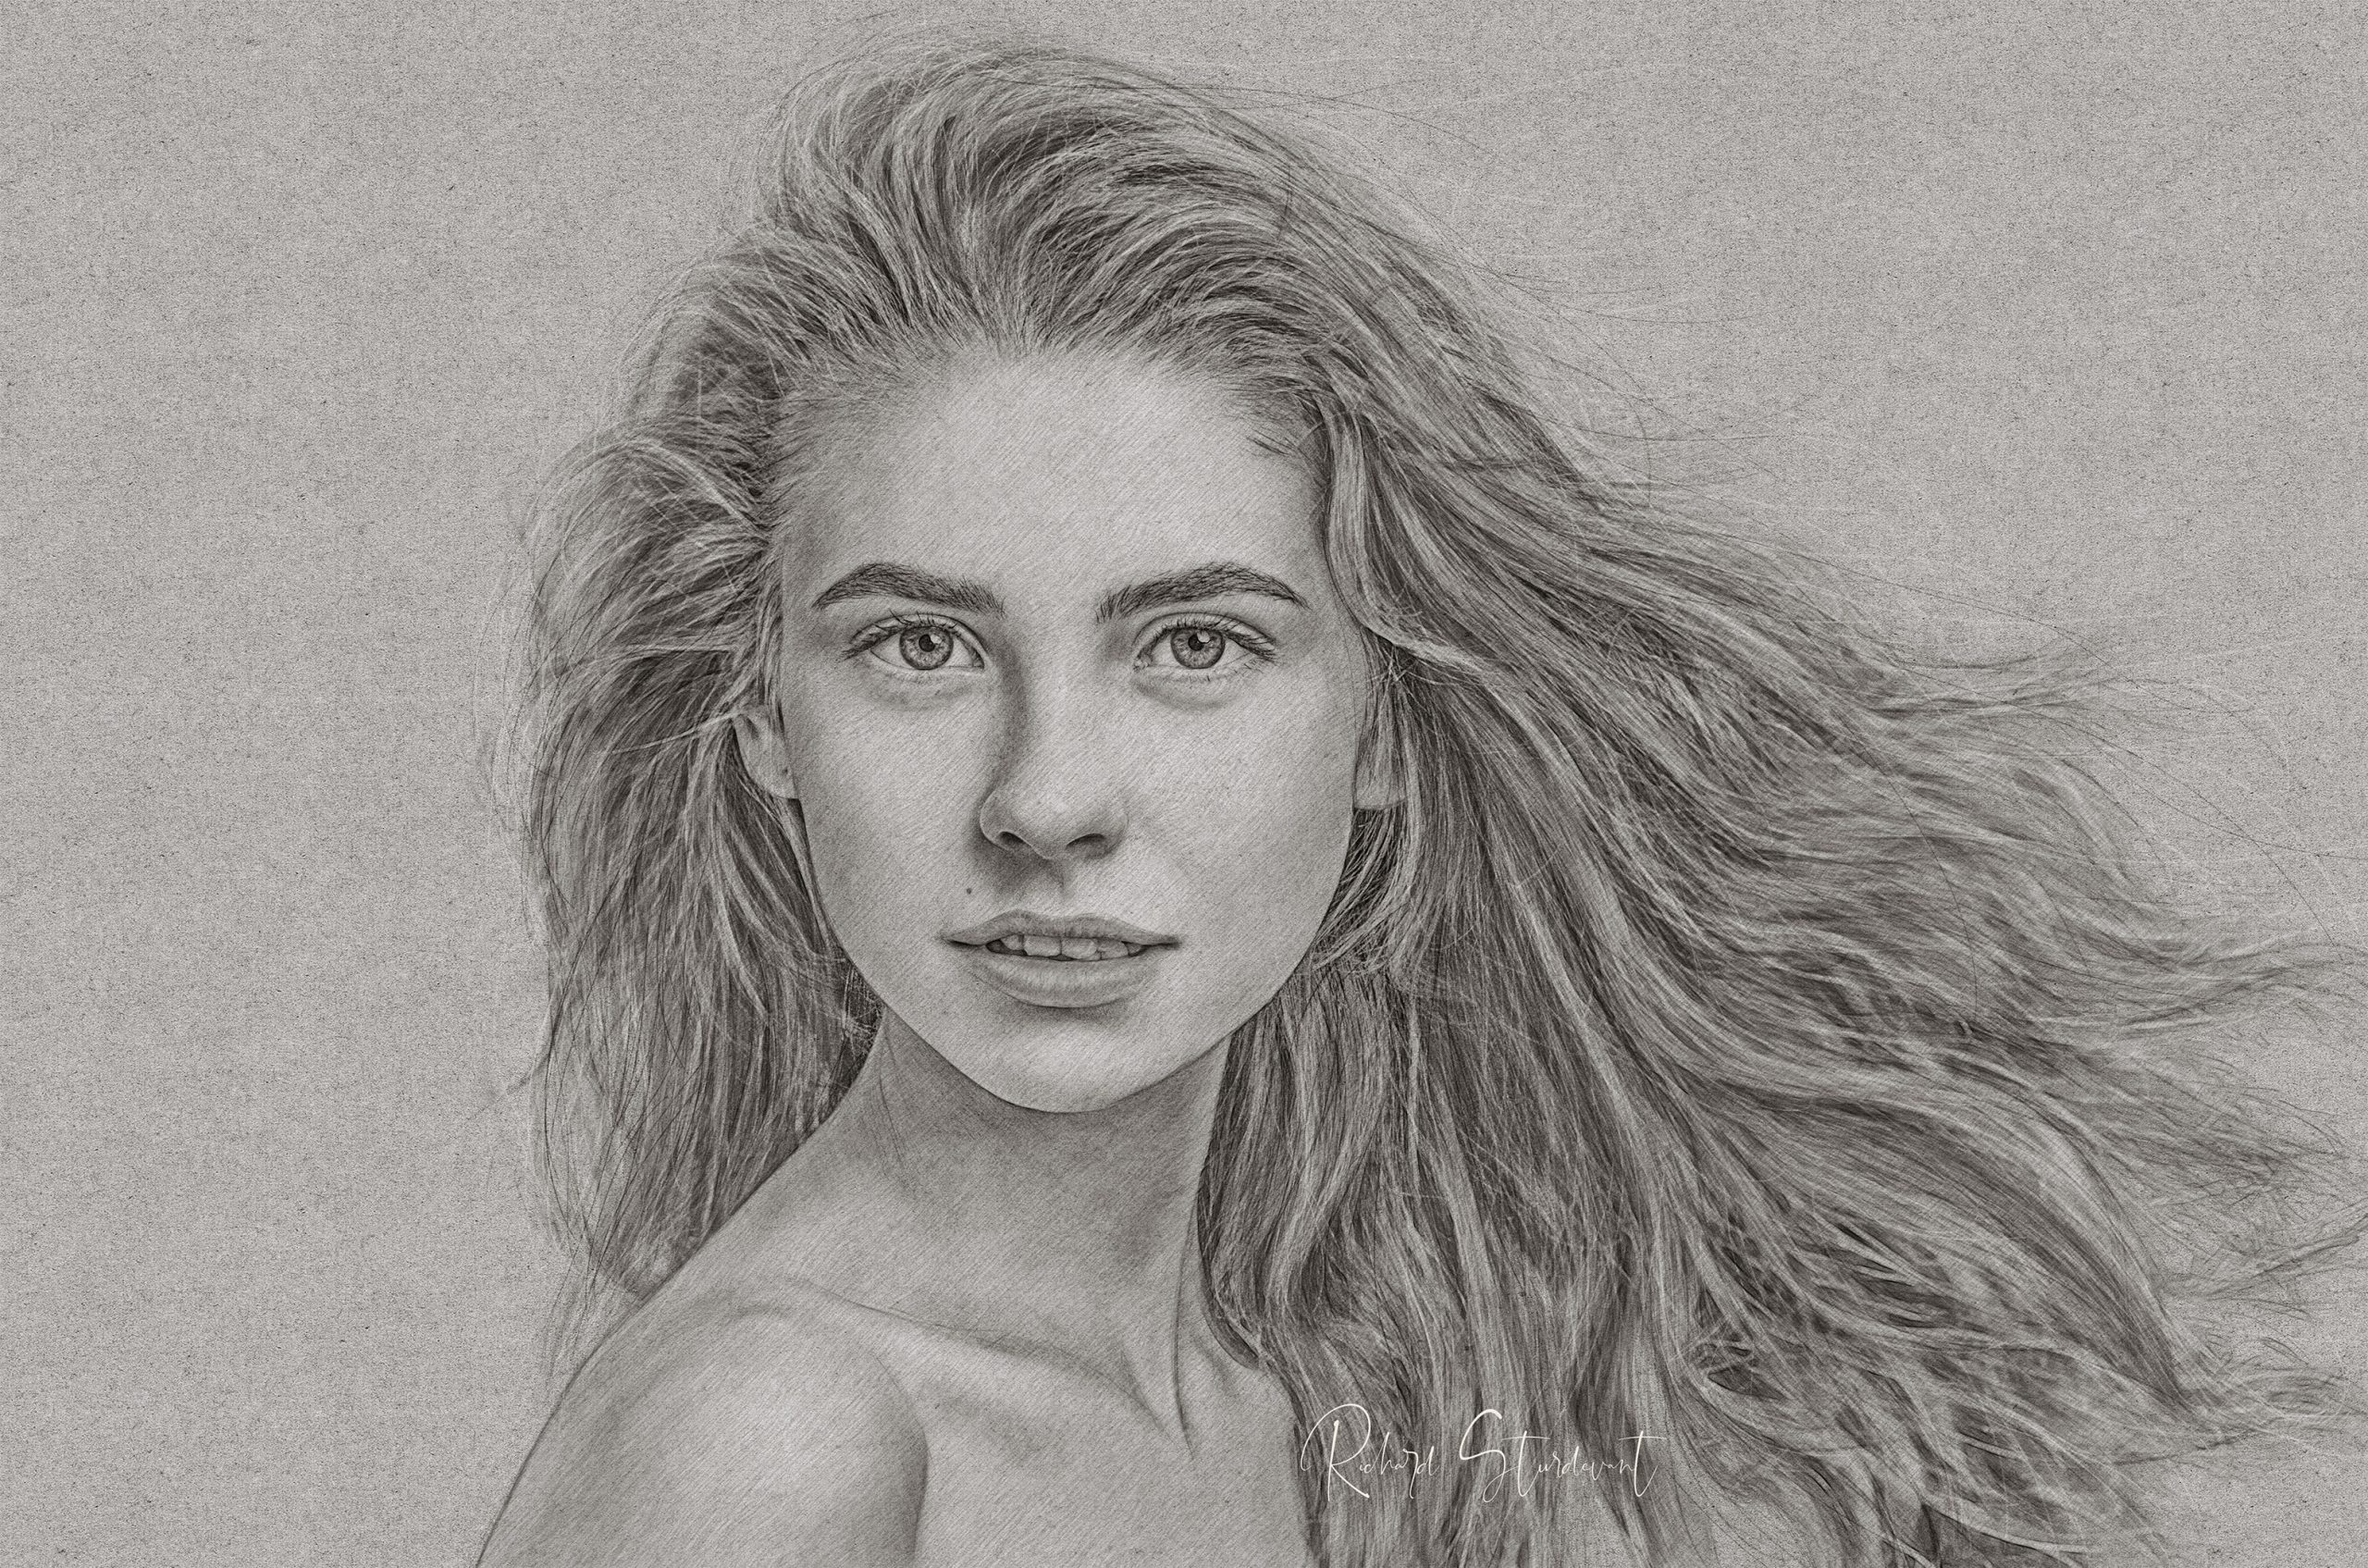 Girl Pencil Portrait fb 2